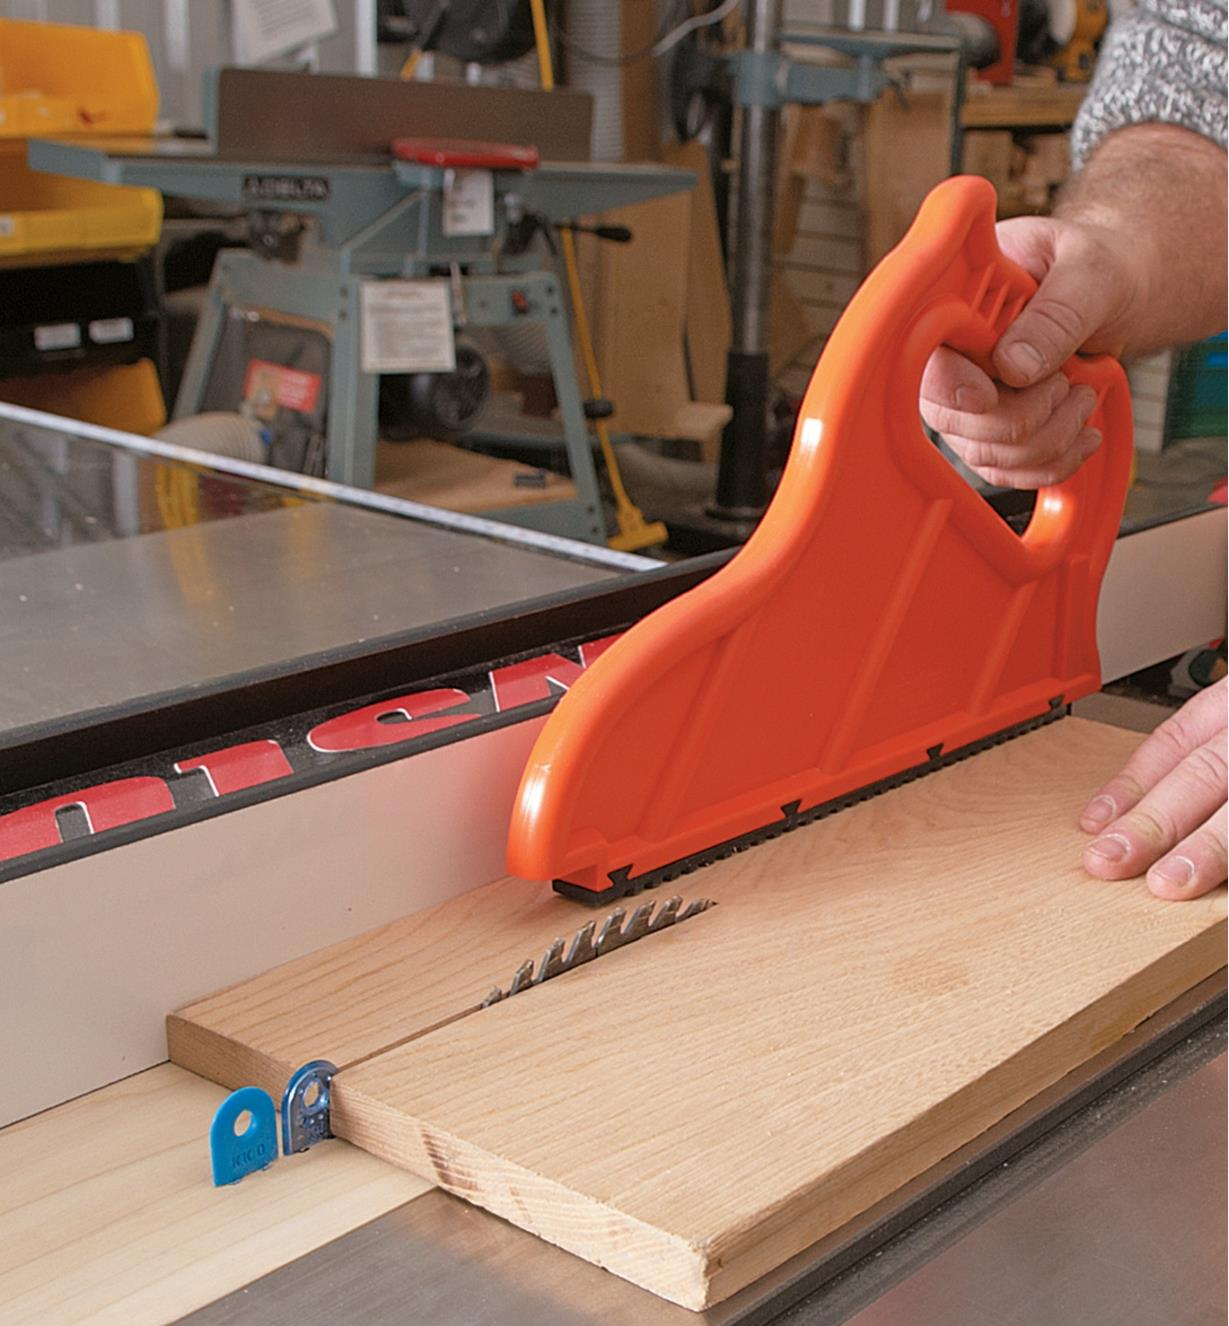 Cutting solid wood on a table saw with a splitter and kerf keeper mounted in a zero-clearance insert